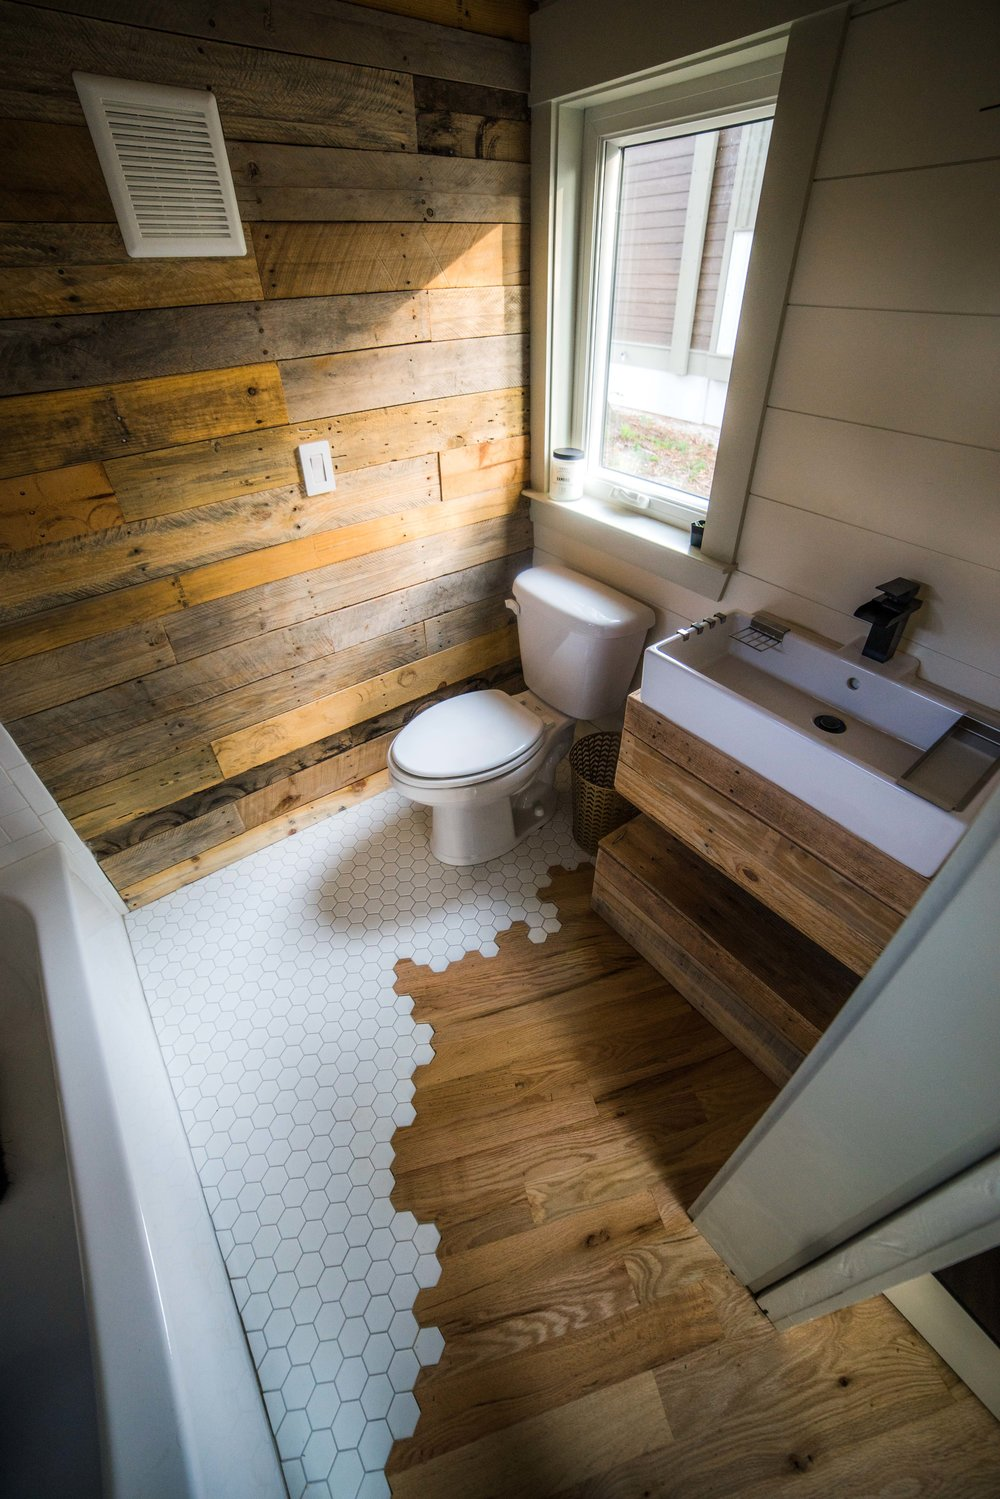 TINY HOUSE TOWN: The Legacy From Wood & Heart Building Co on Contemporary:kkgewzoz5M4= Small Bathroom Ideas  id=53431